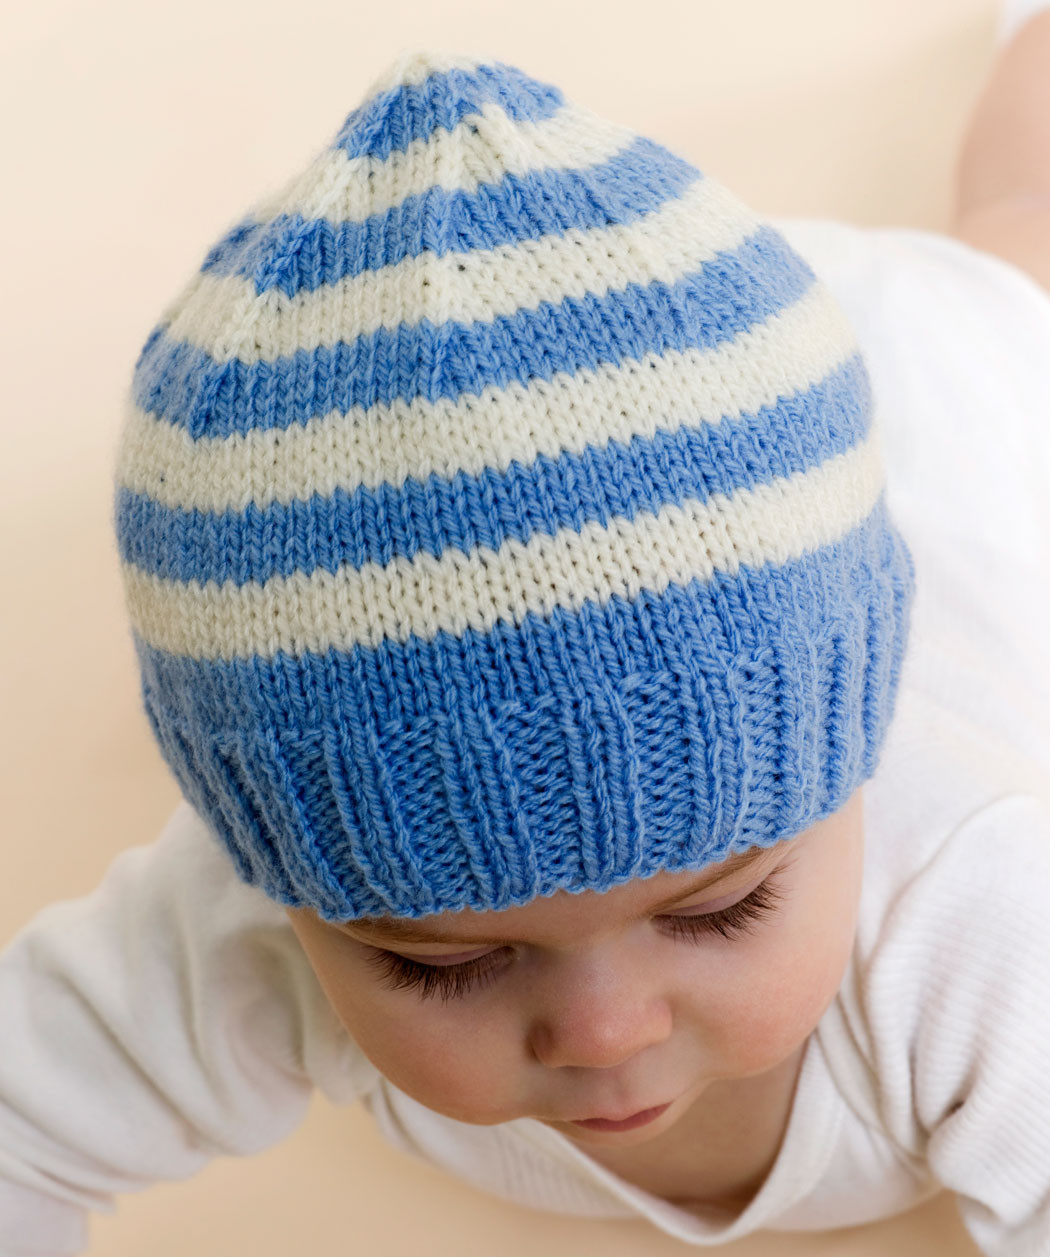 Knitting for Newborns Awesome Knitting Hats – Tag Hats Of Awesome 41 Images Knitting for Newborns